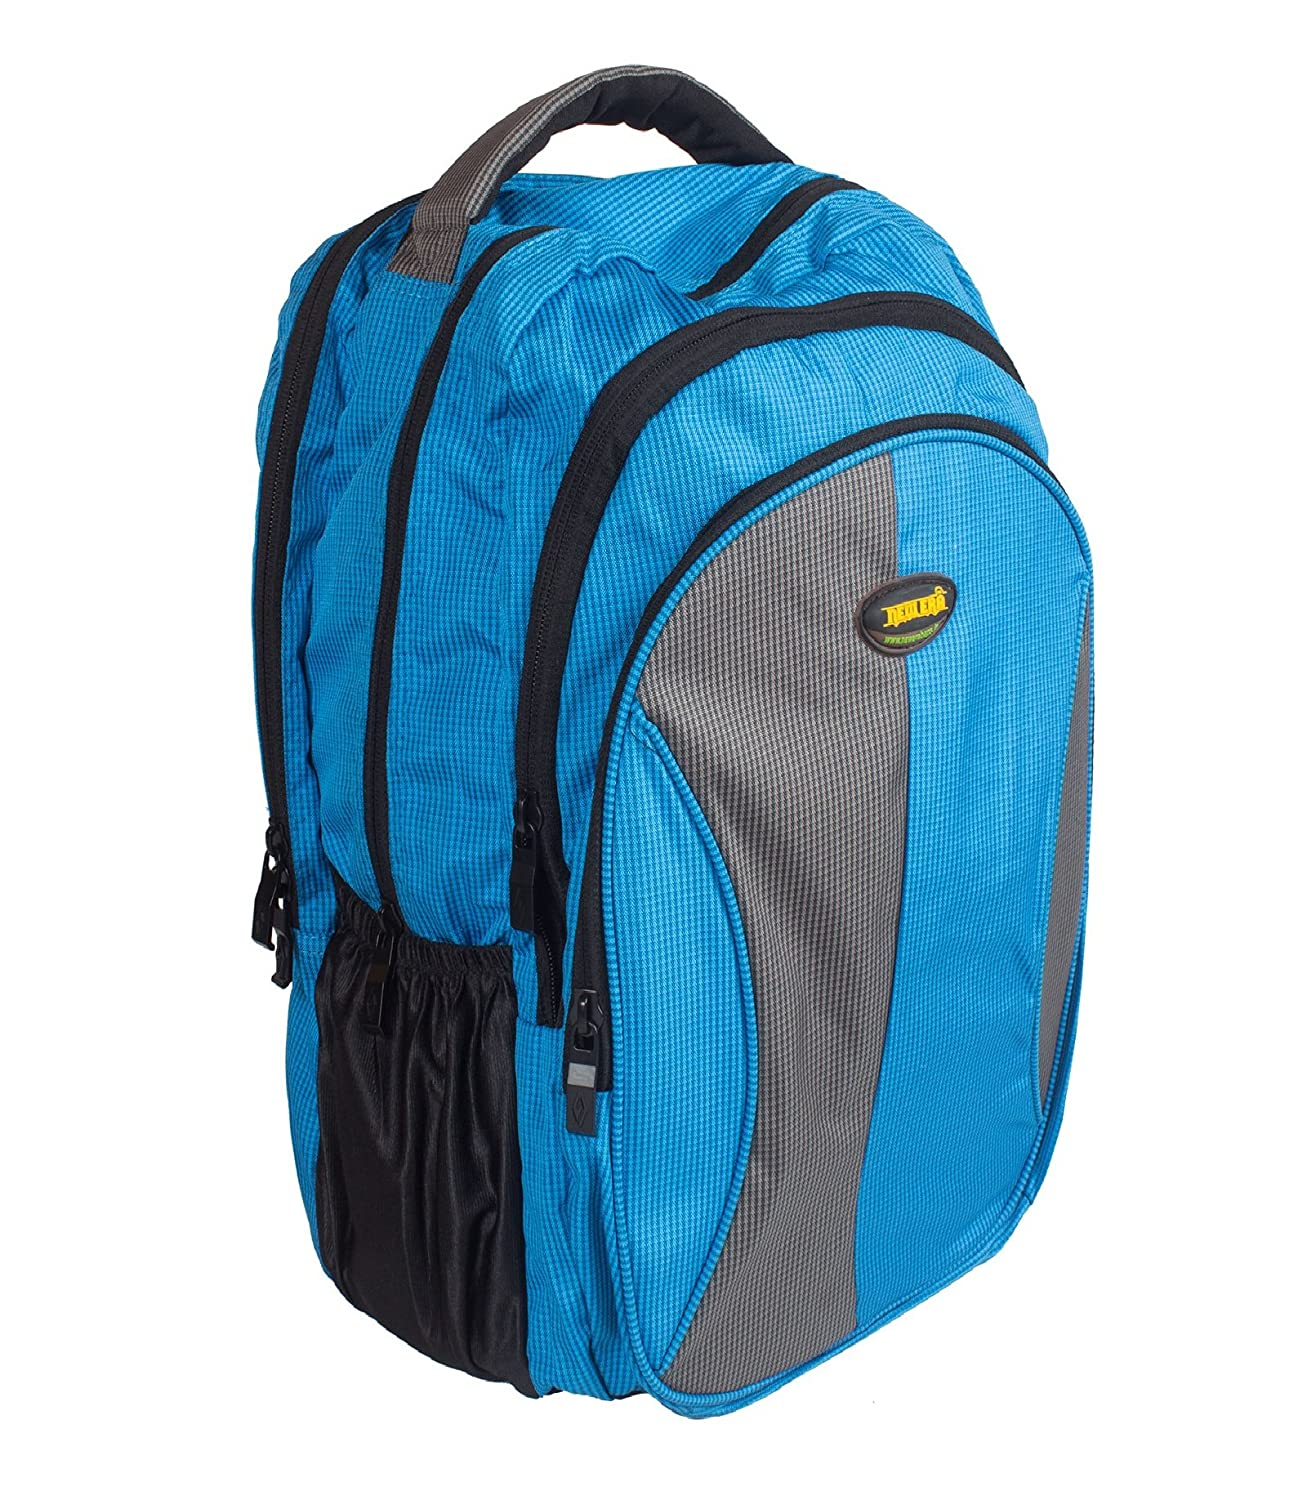 f9ab794306ed New-Era Polyester 40 Ltr Sky Blue-Grey School Bag  school bags for boys